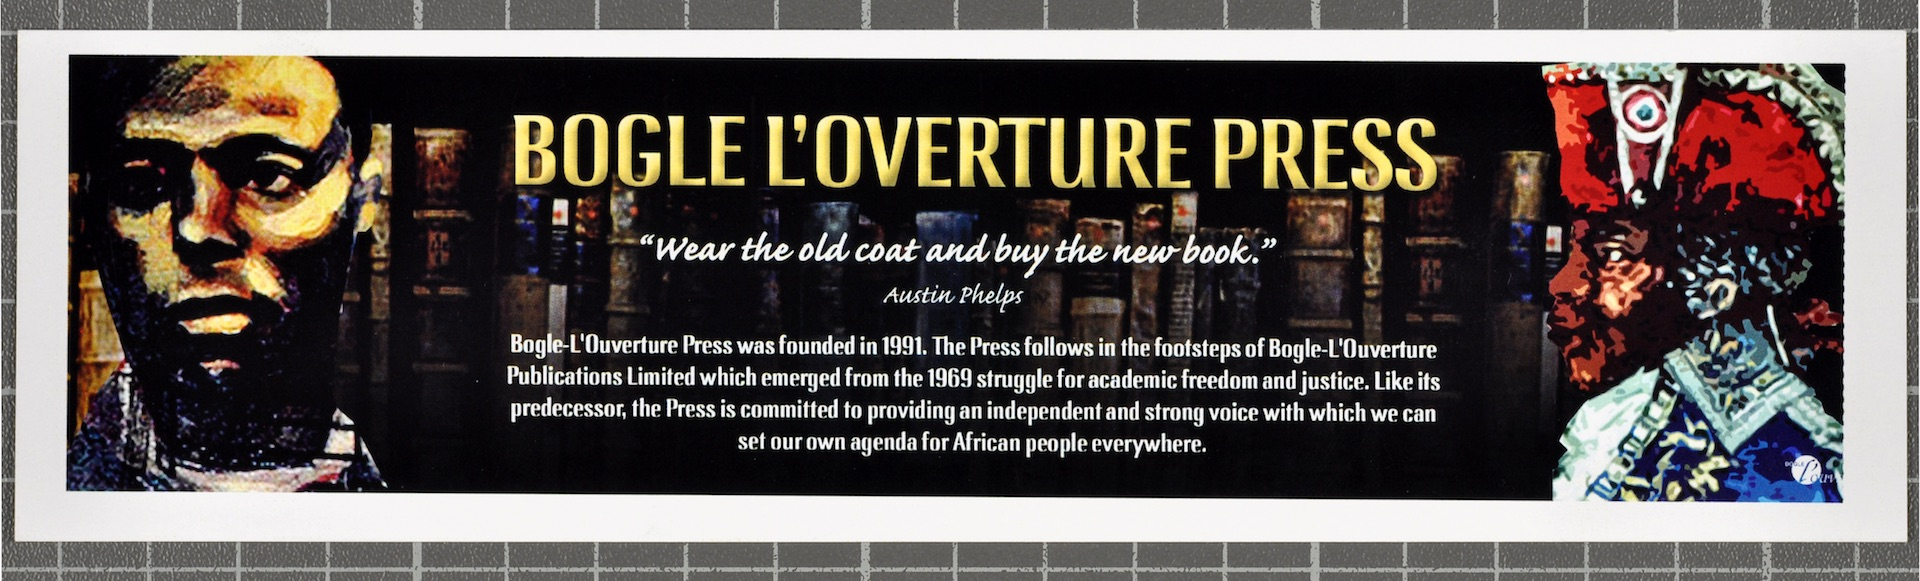 13 Bogle-L'Ouverture Press (flyer). c1990s. Huntley Archives at London Metropolitan Archives_Archive